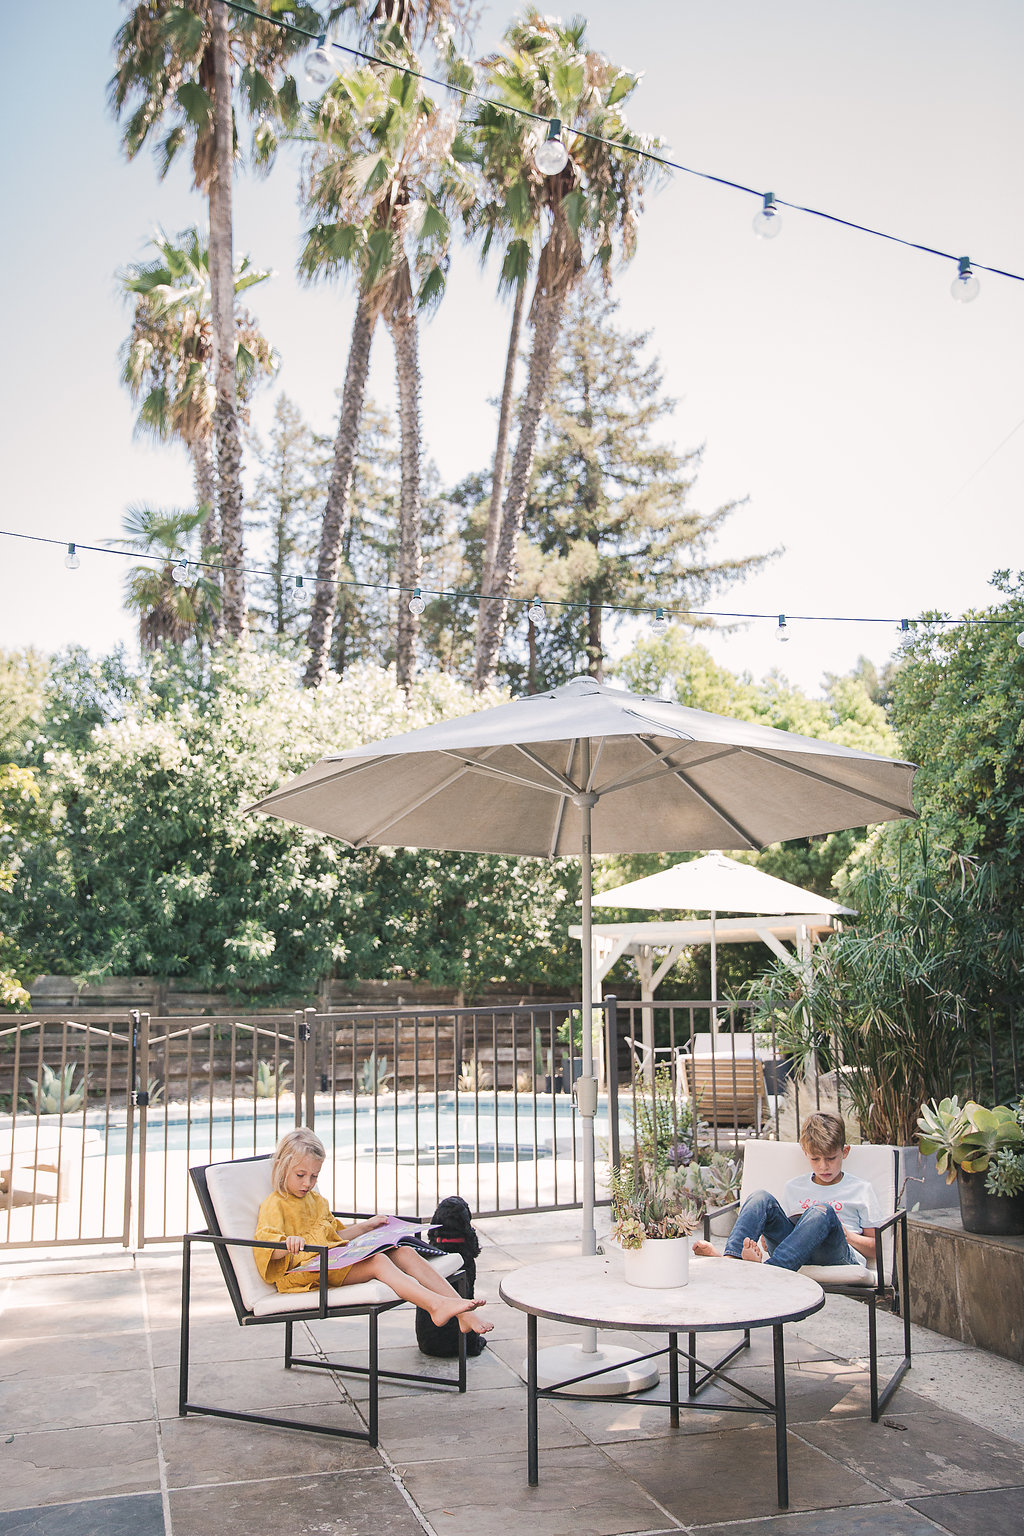 Sacramento_photographer_Create_and_gather_Hither_and_Thither_Blog16.jpg